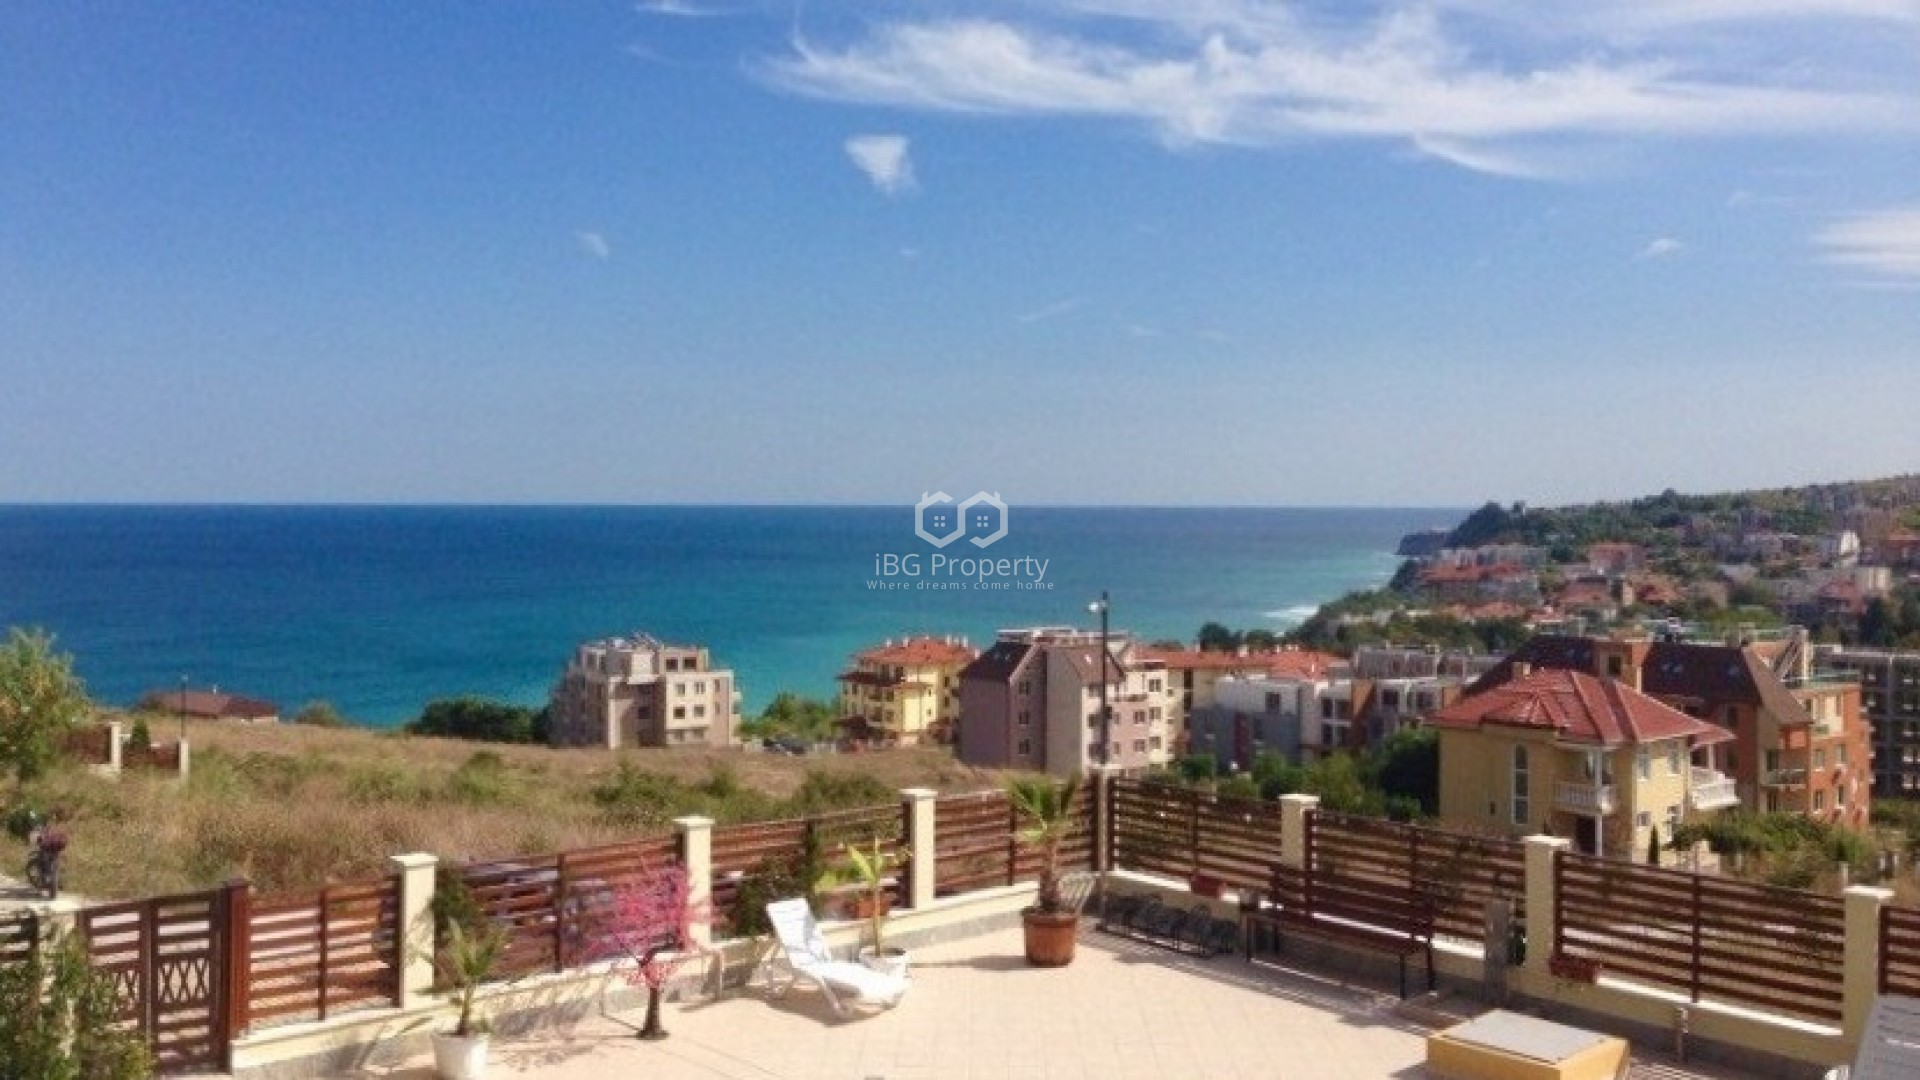 EXCLUSIVE OFFER! One bedroom apartment Byala 42 m2